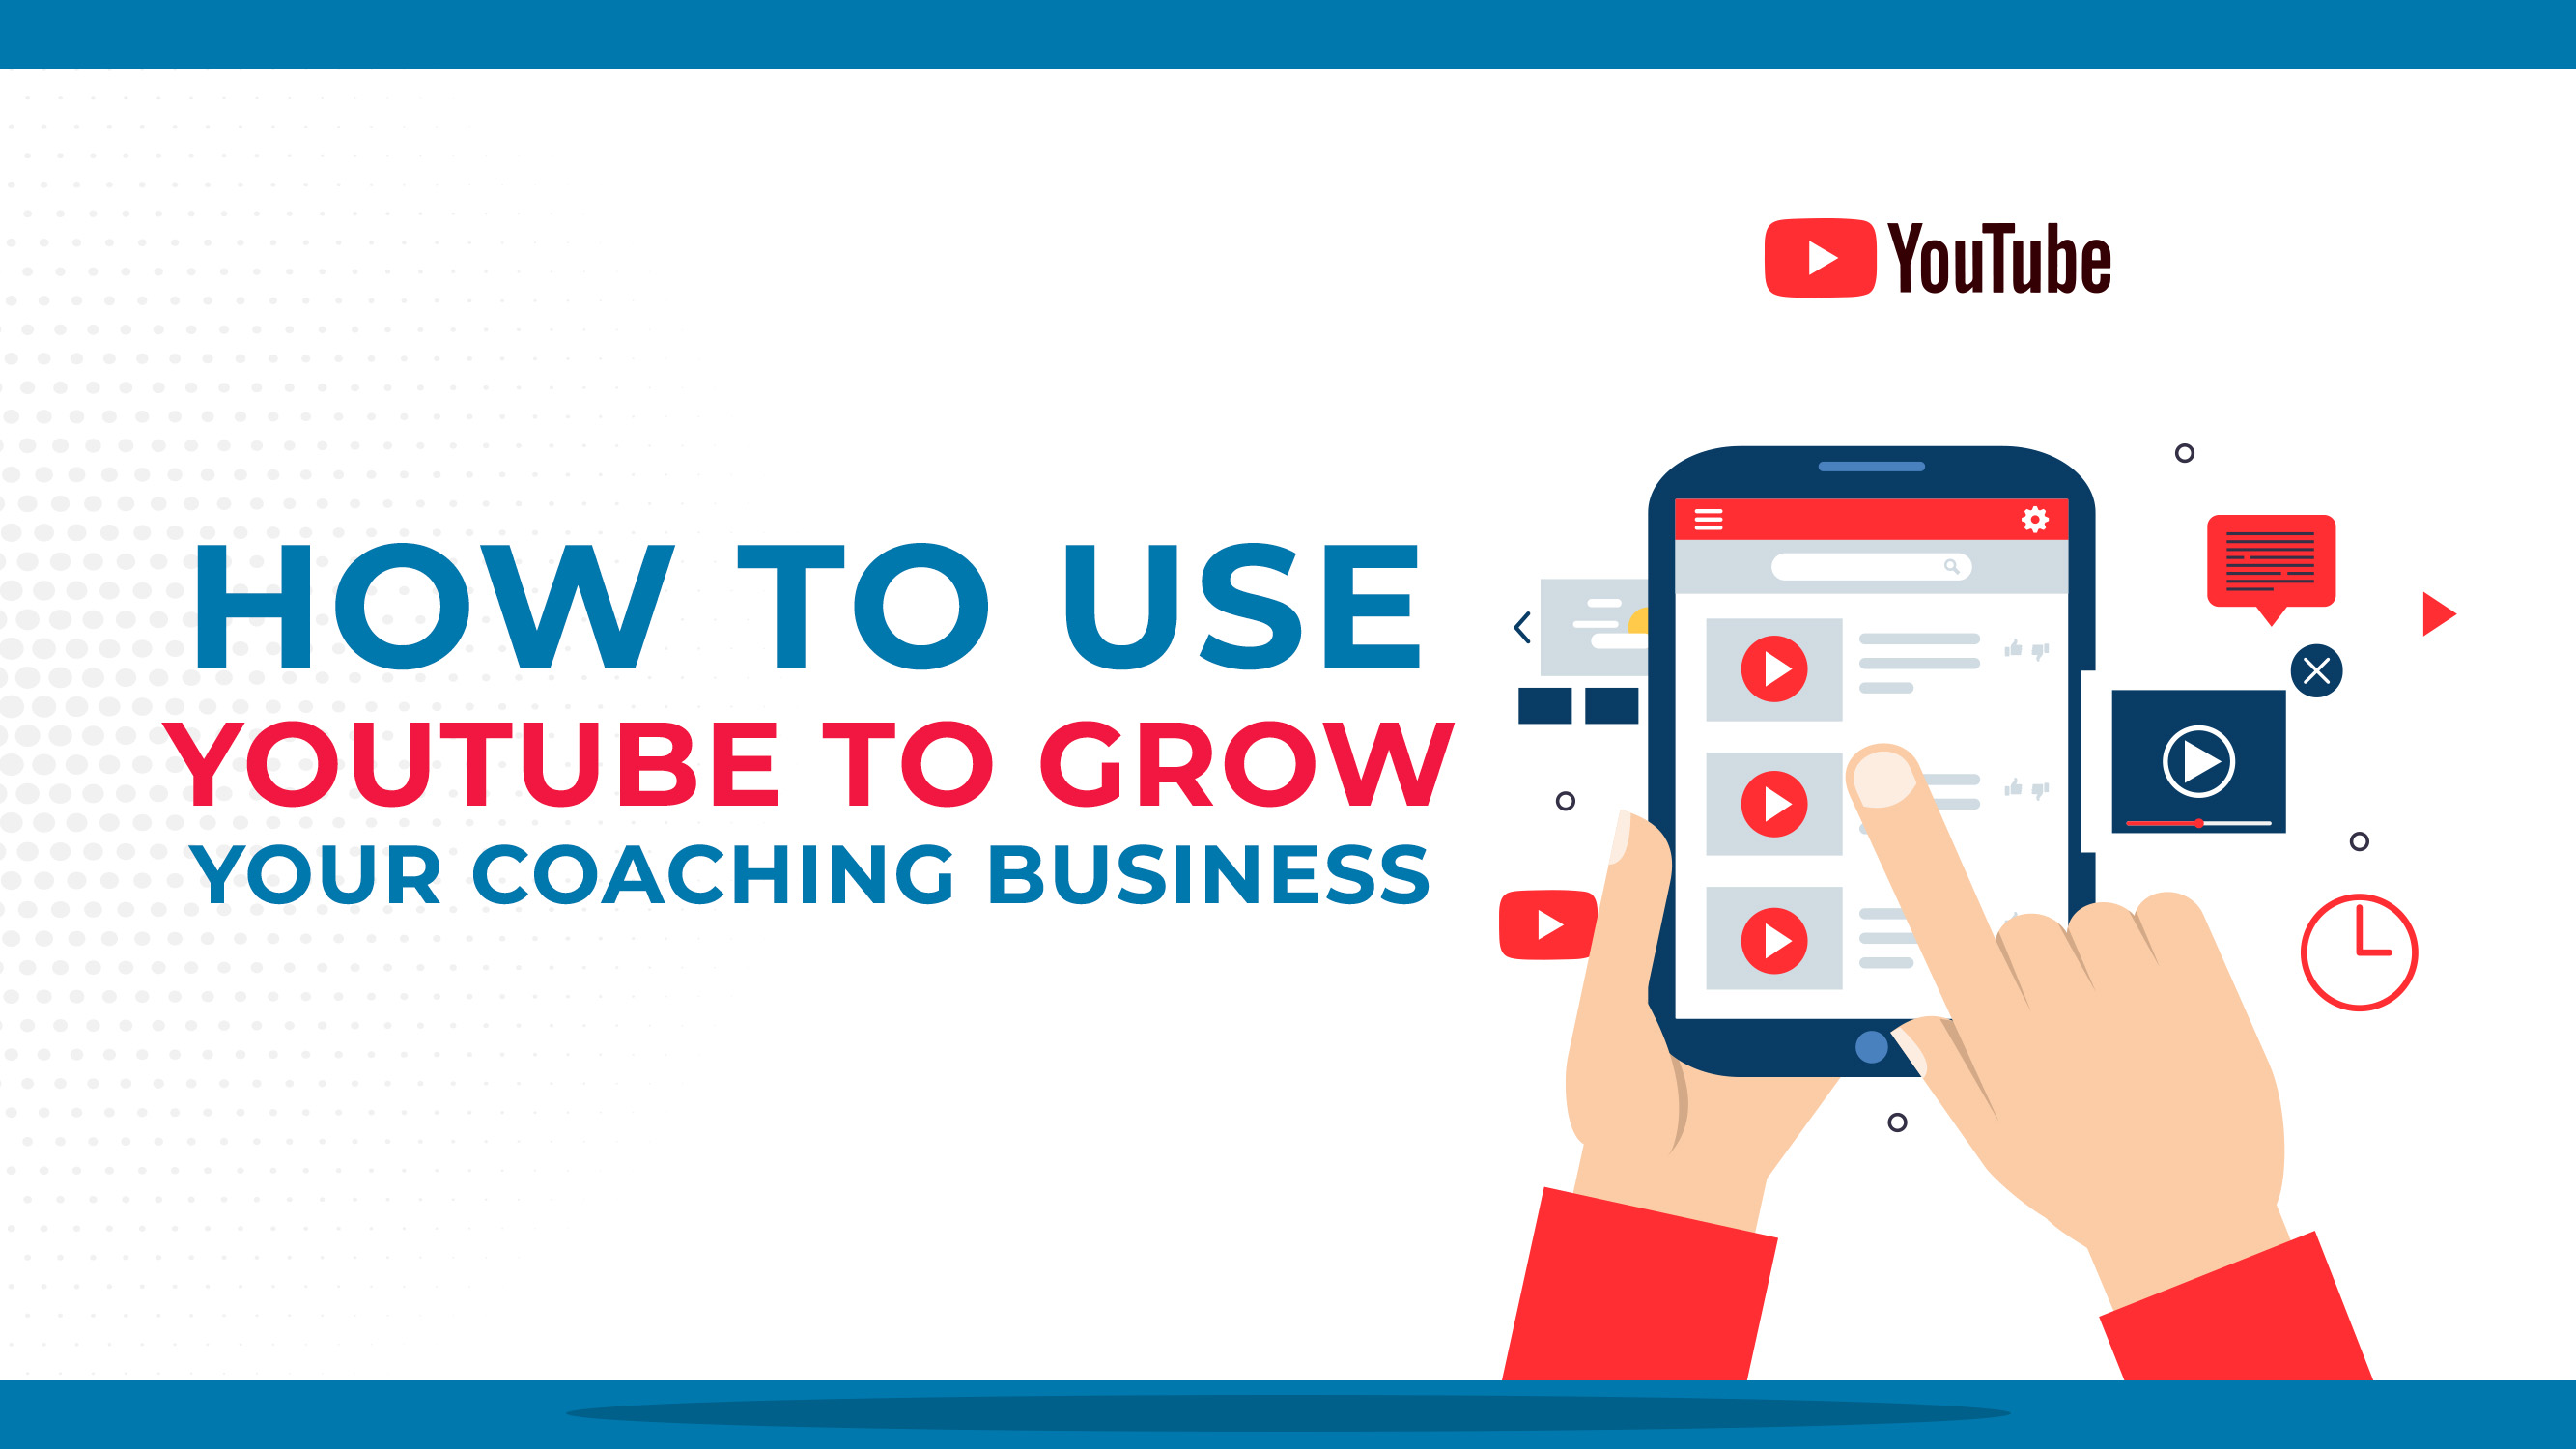 How To Use YouTube To Grow Your Coaching Business